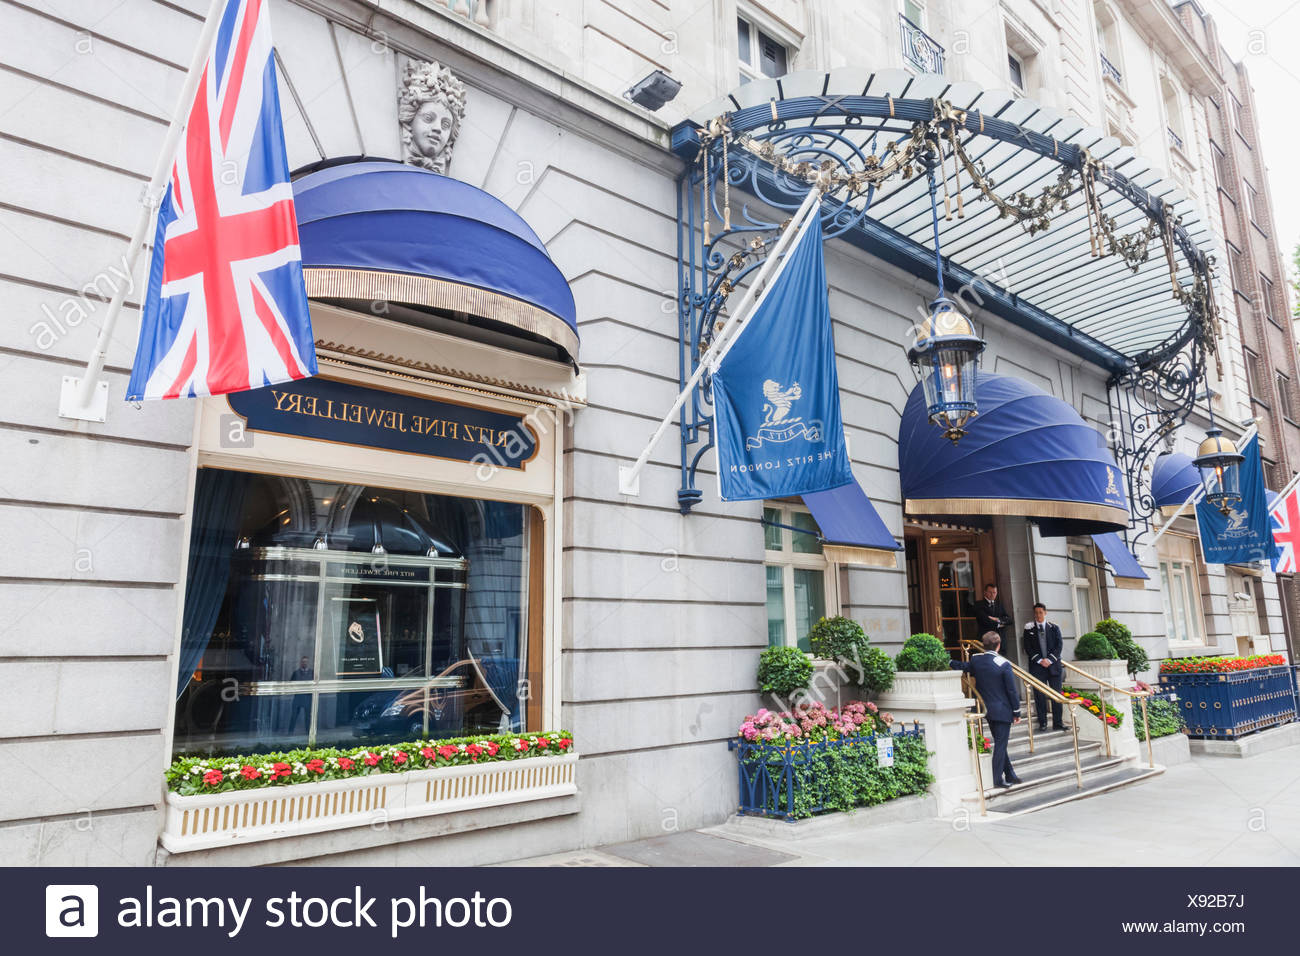 England, London, Piccadilly, The Ritz Hotel - Stock Image